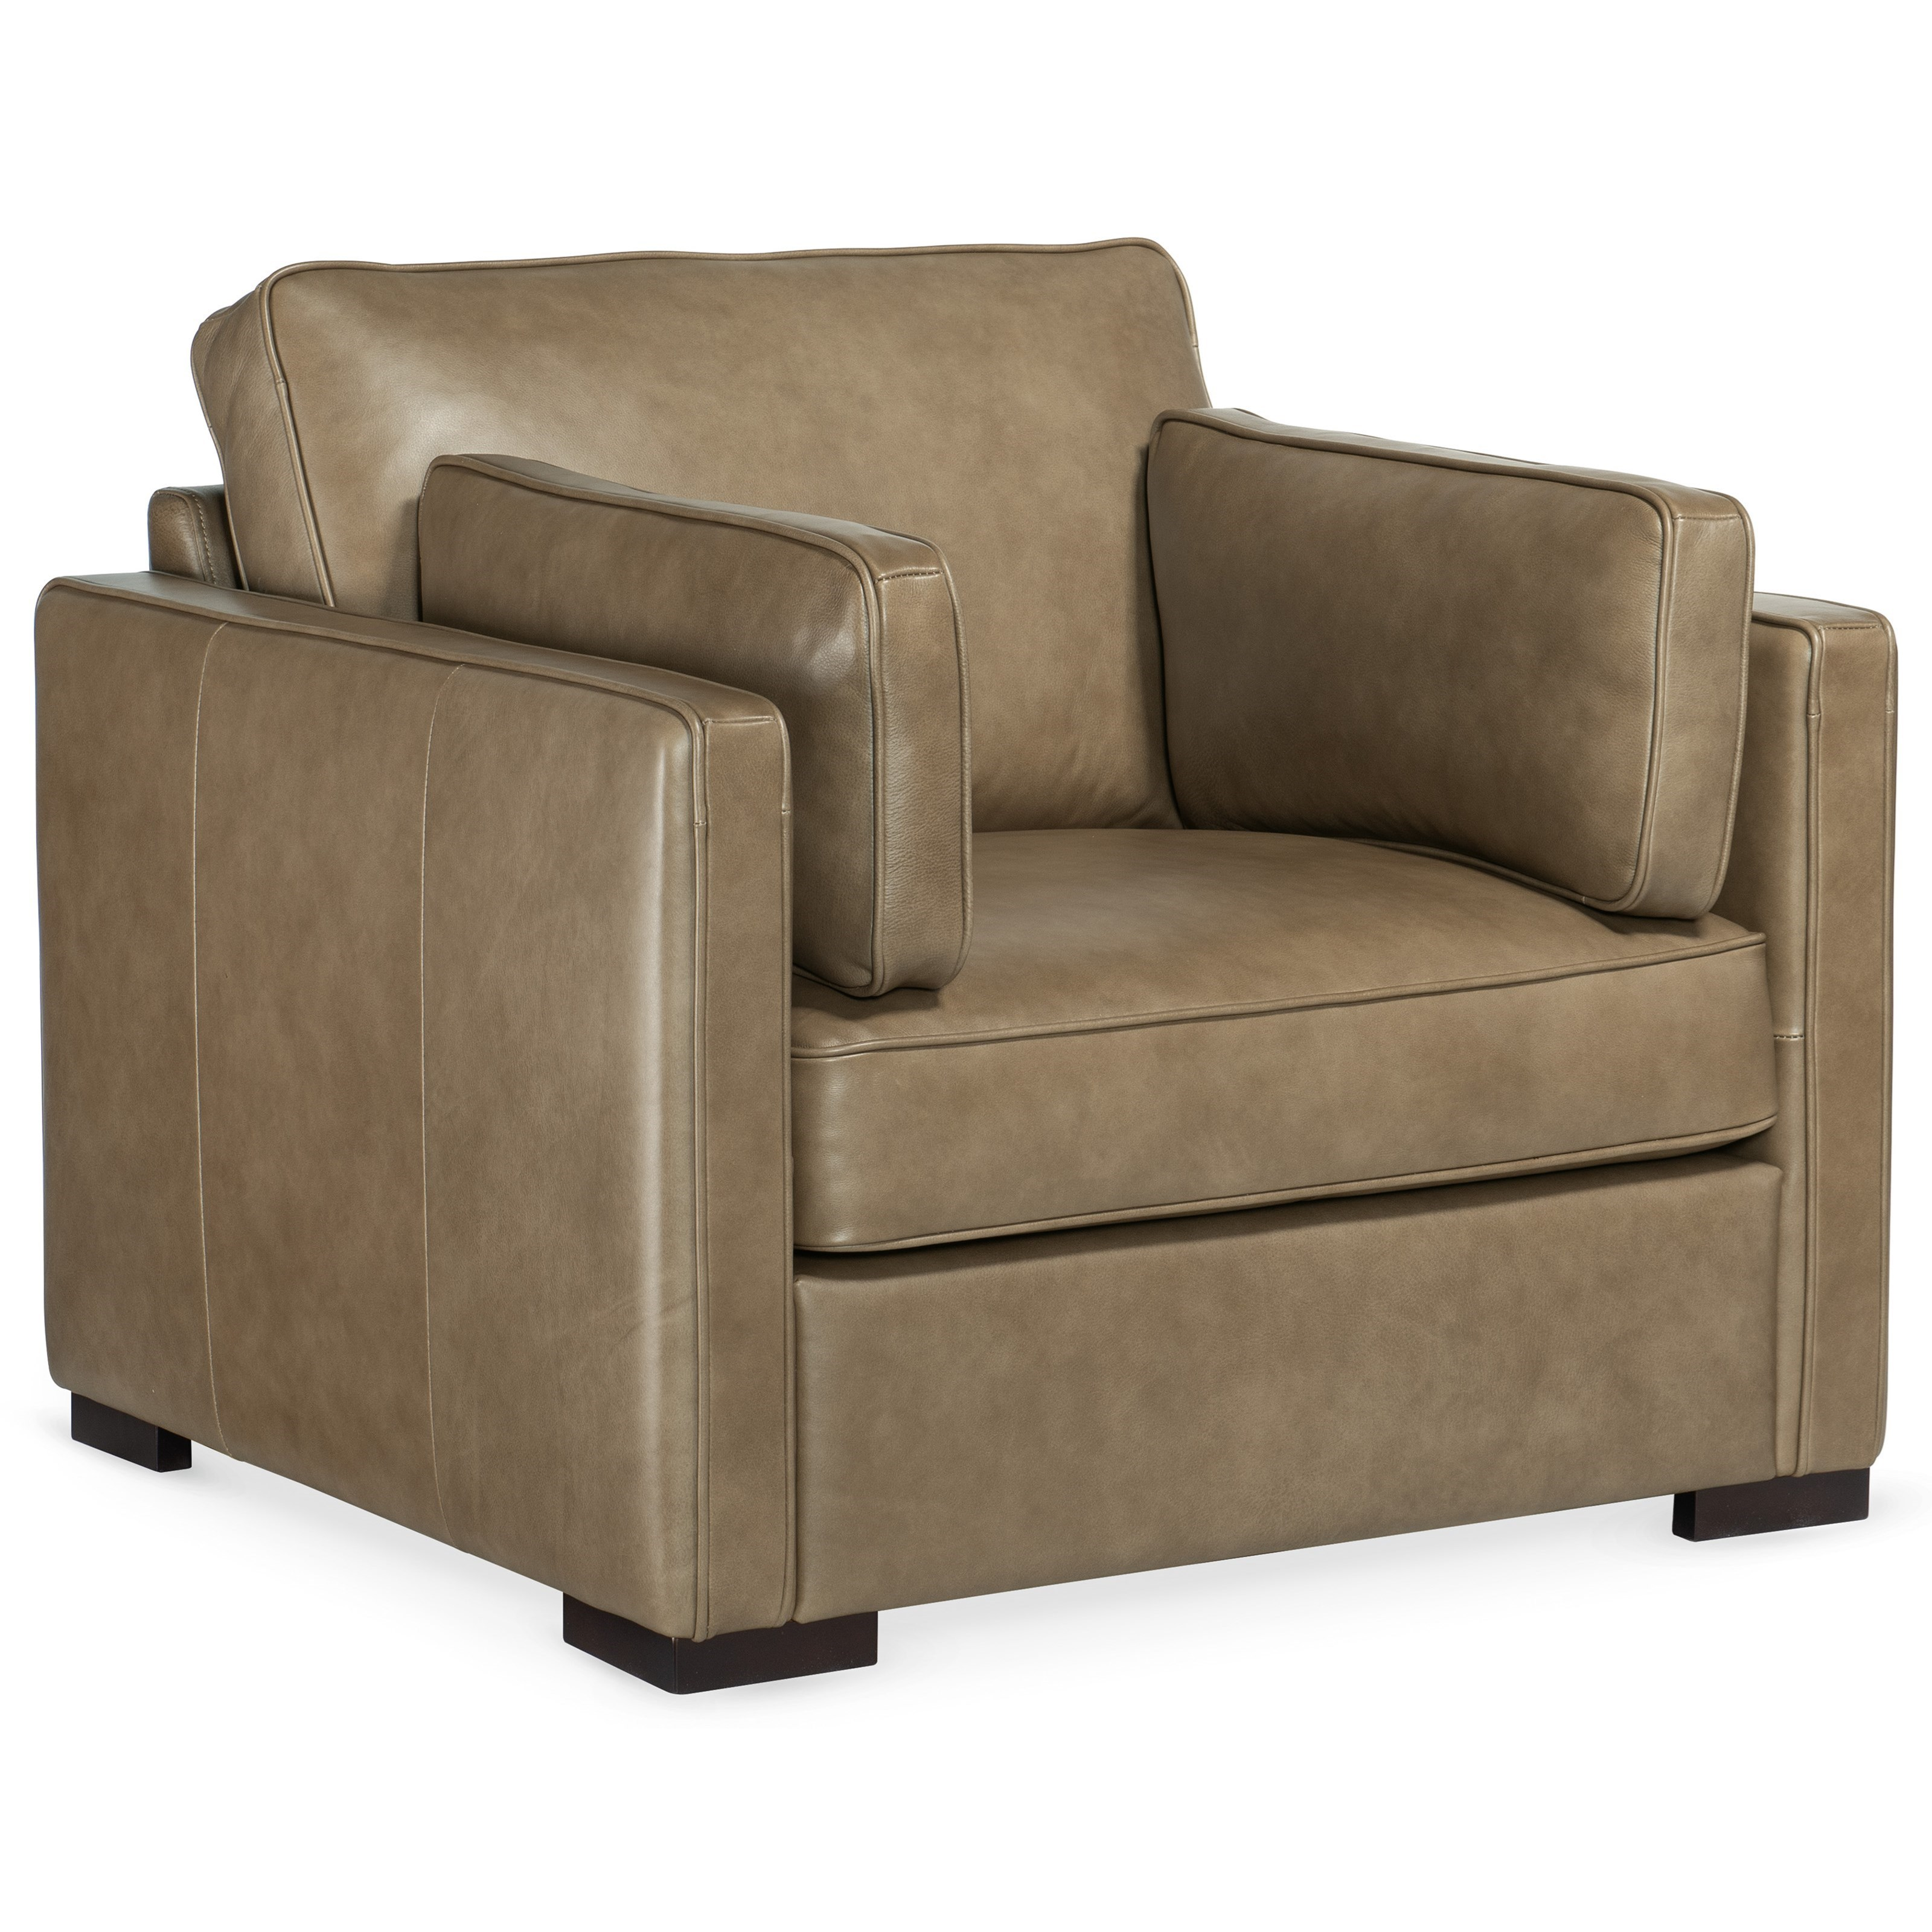 Romiah Stationary Chair by Hooker Furniture at Miller Waldrop Furniture and Decor